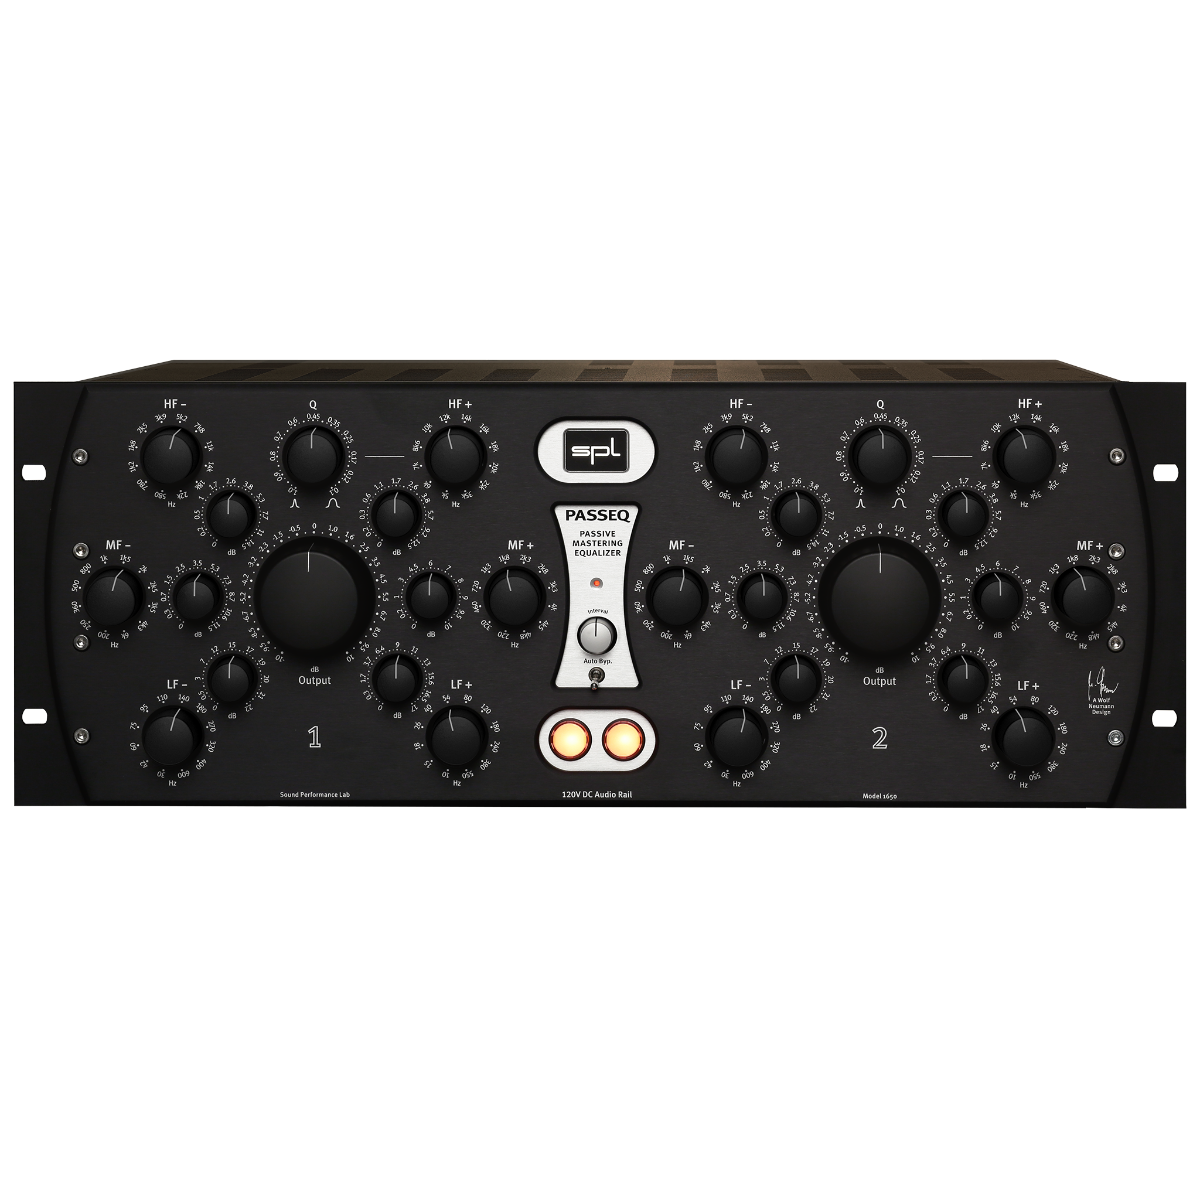 Эквалайзер SPL Passeq 2595 black&silver